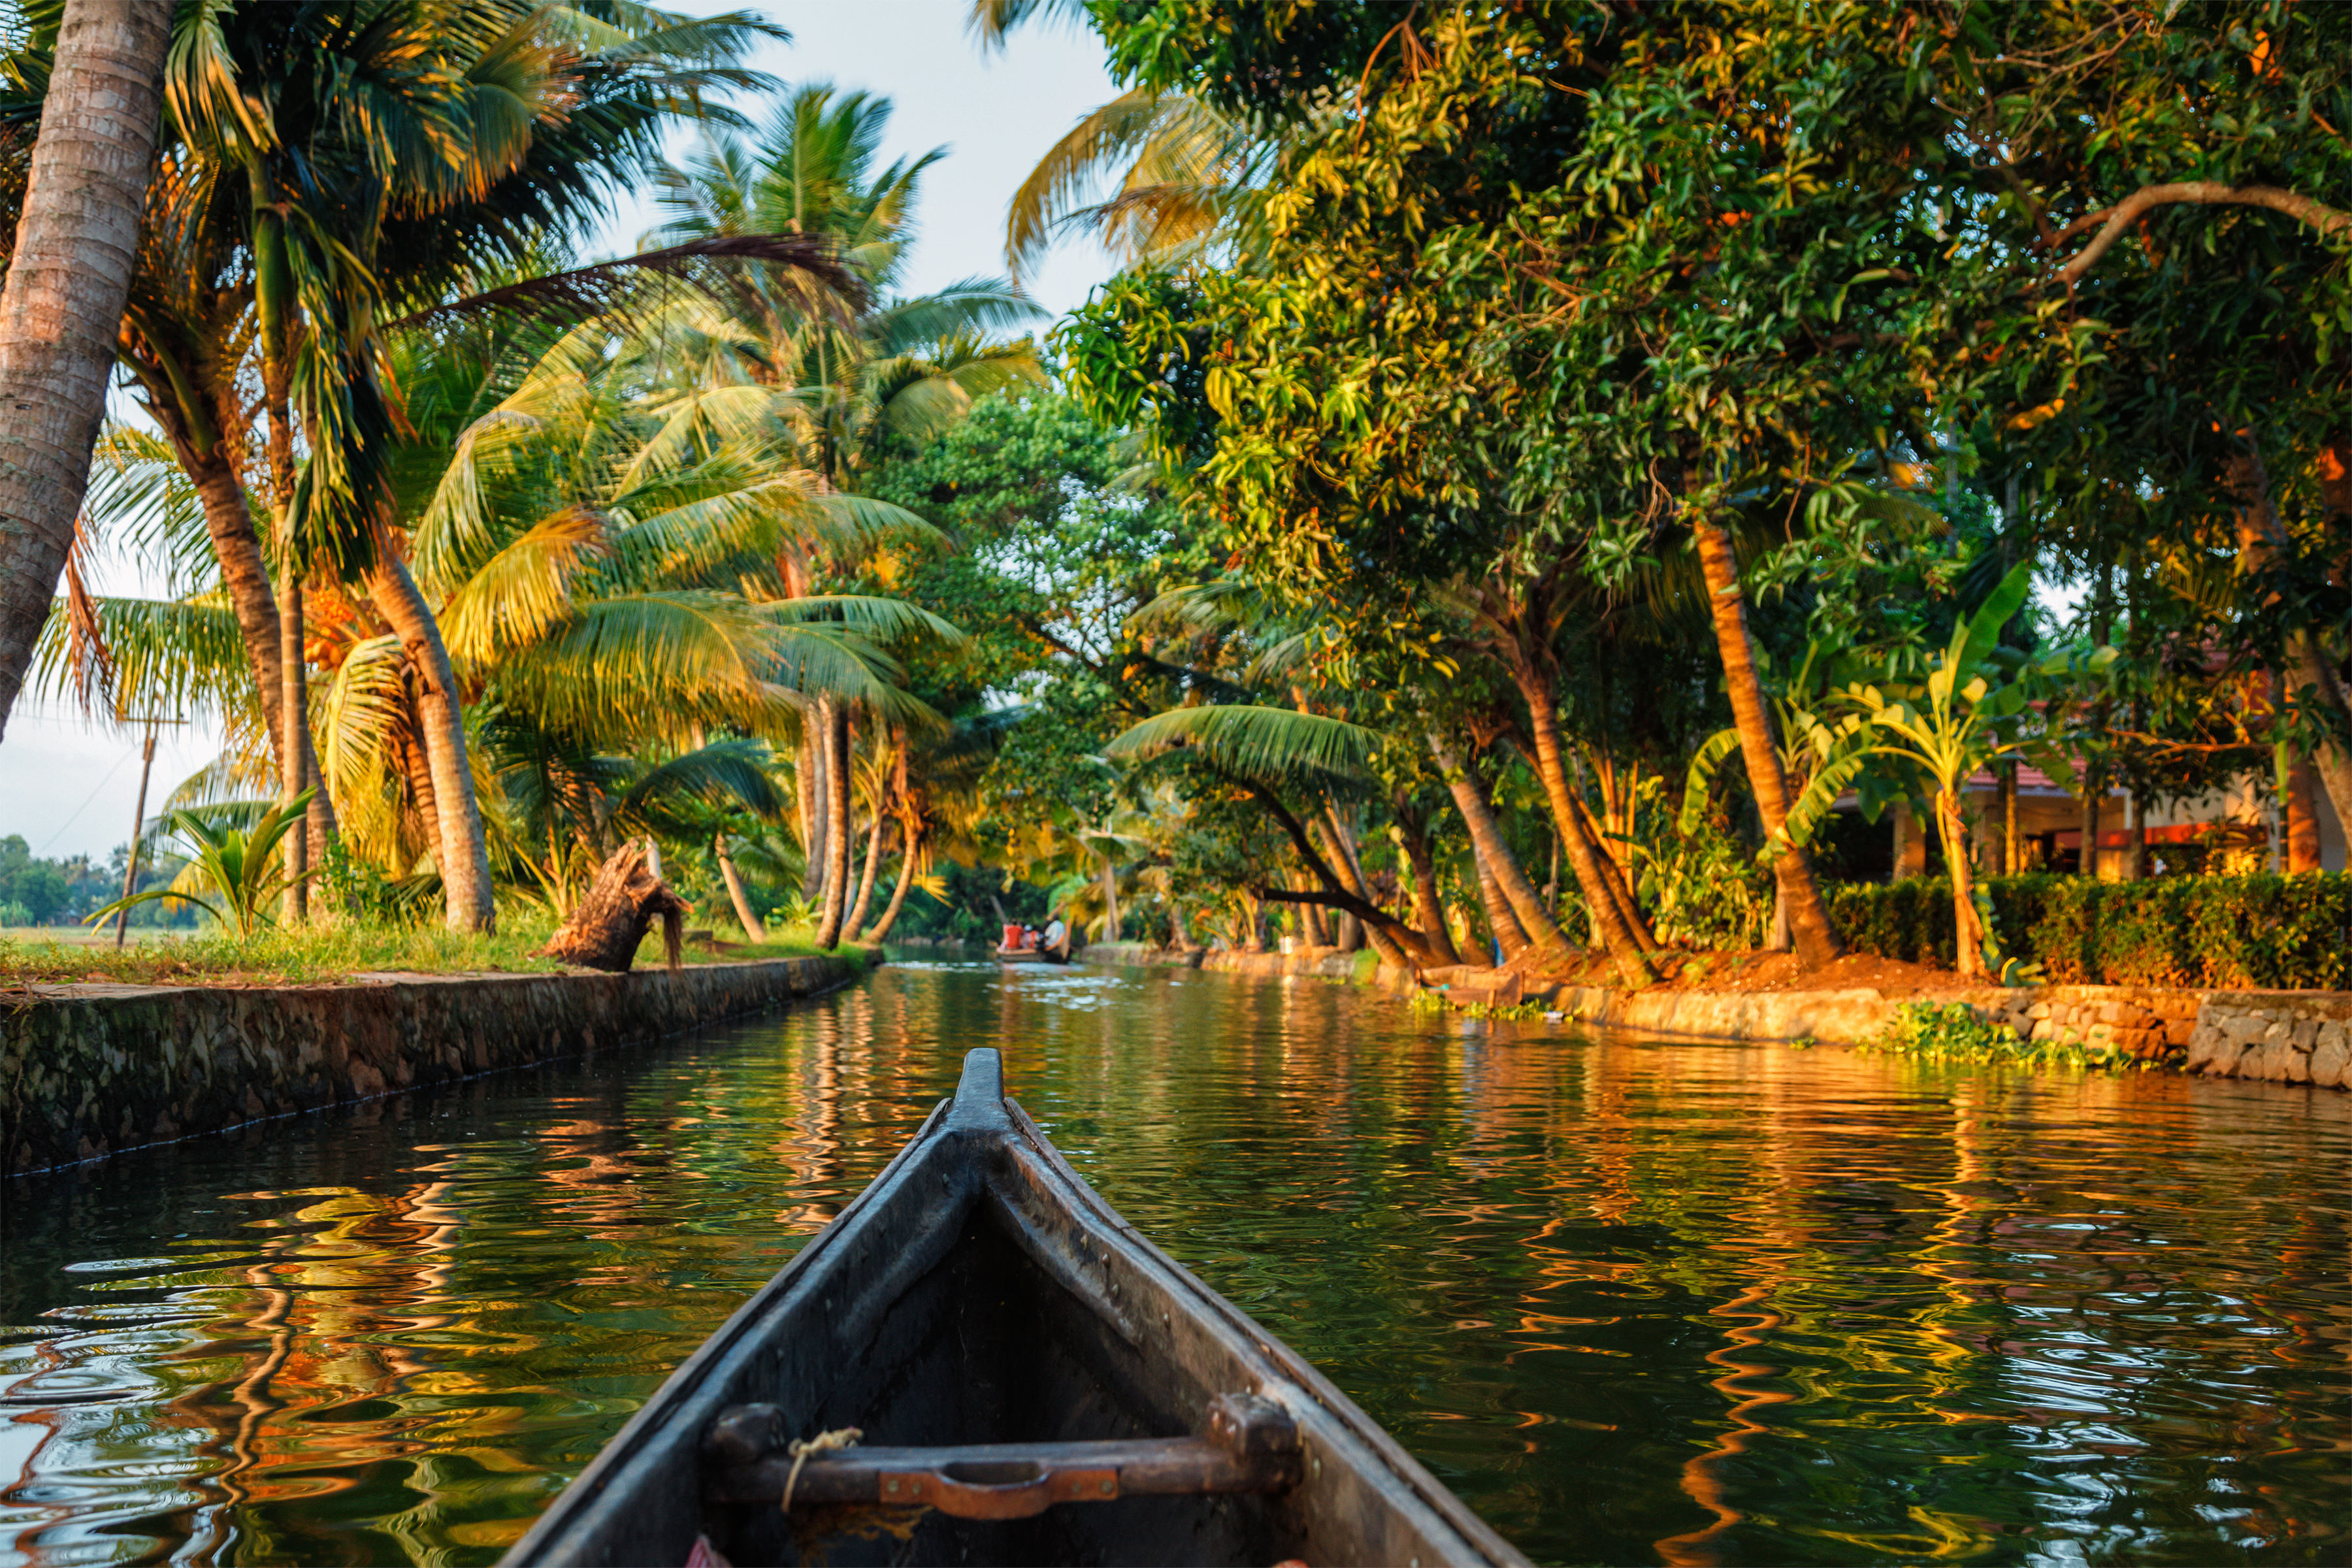 backwaters of kerala in india